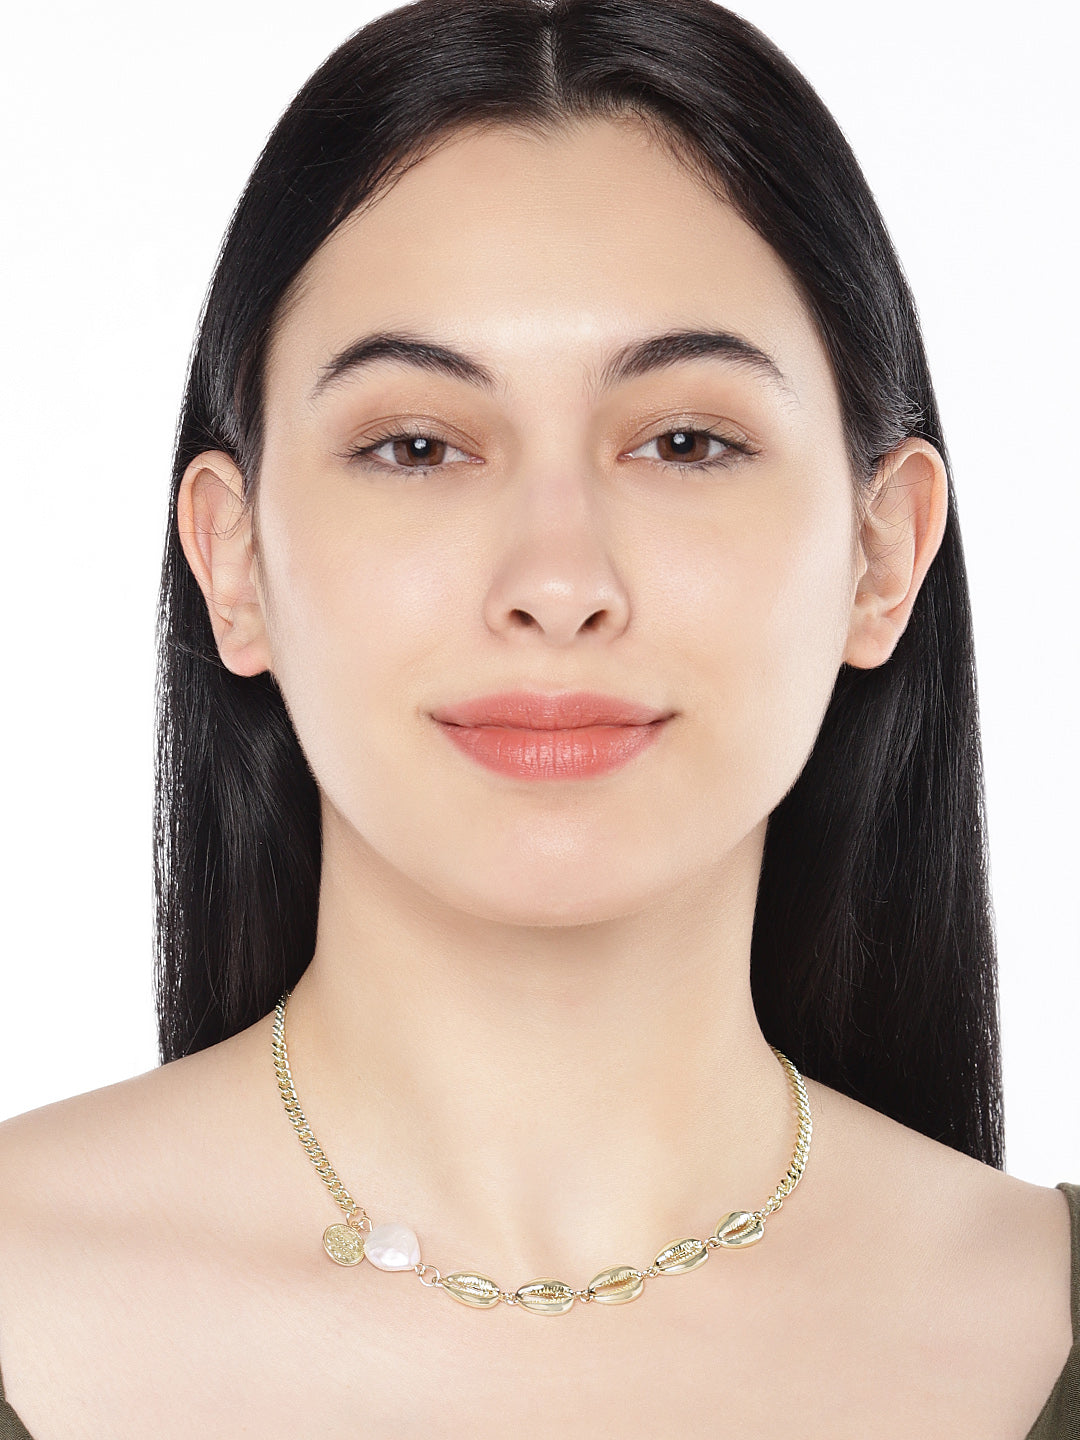 Gold Shell  Adjustable Choker Necklace - ChicMela